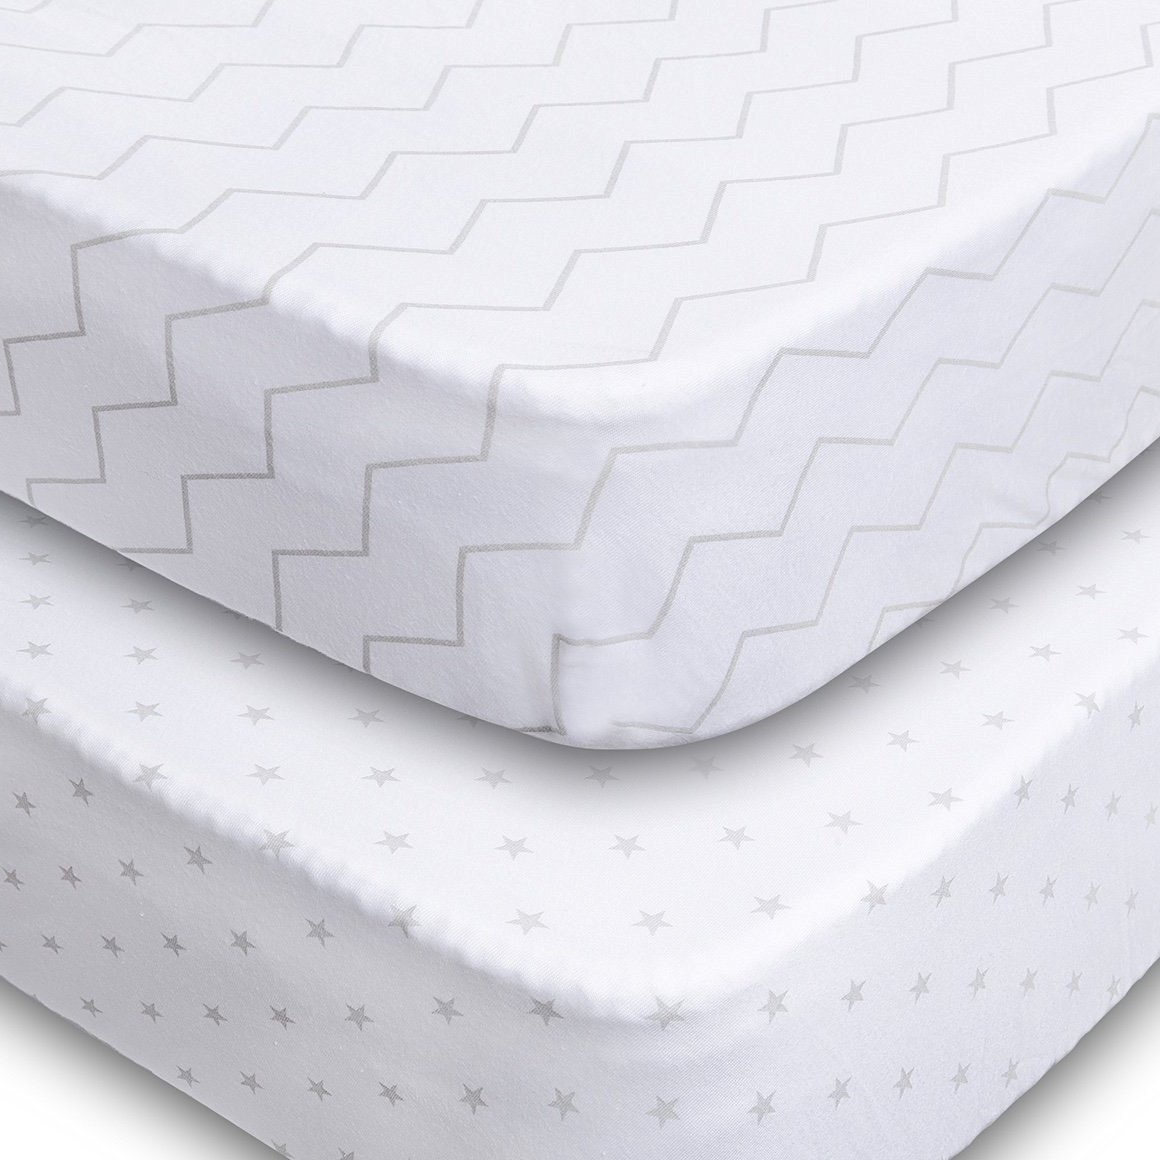 Crib Sheets - 2 Pack Fitted 100% Soft Jersey Cotton Sheet - Bedding with Unisex Chevron & Stars Custom Design - Fits Standard Mattress for Babies & Toddlers - Perfect Baby Shower Gift for Boys & Girls Jomolly